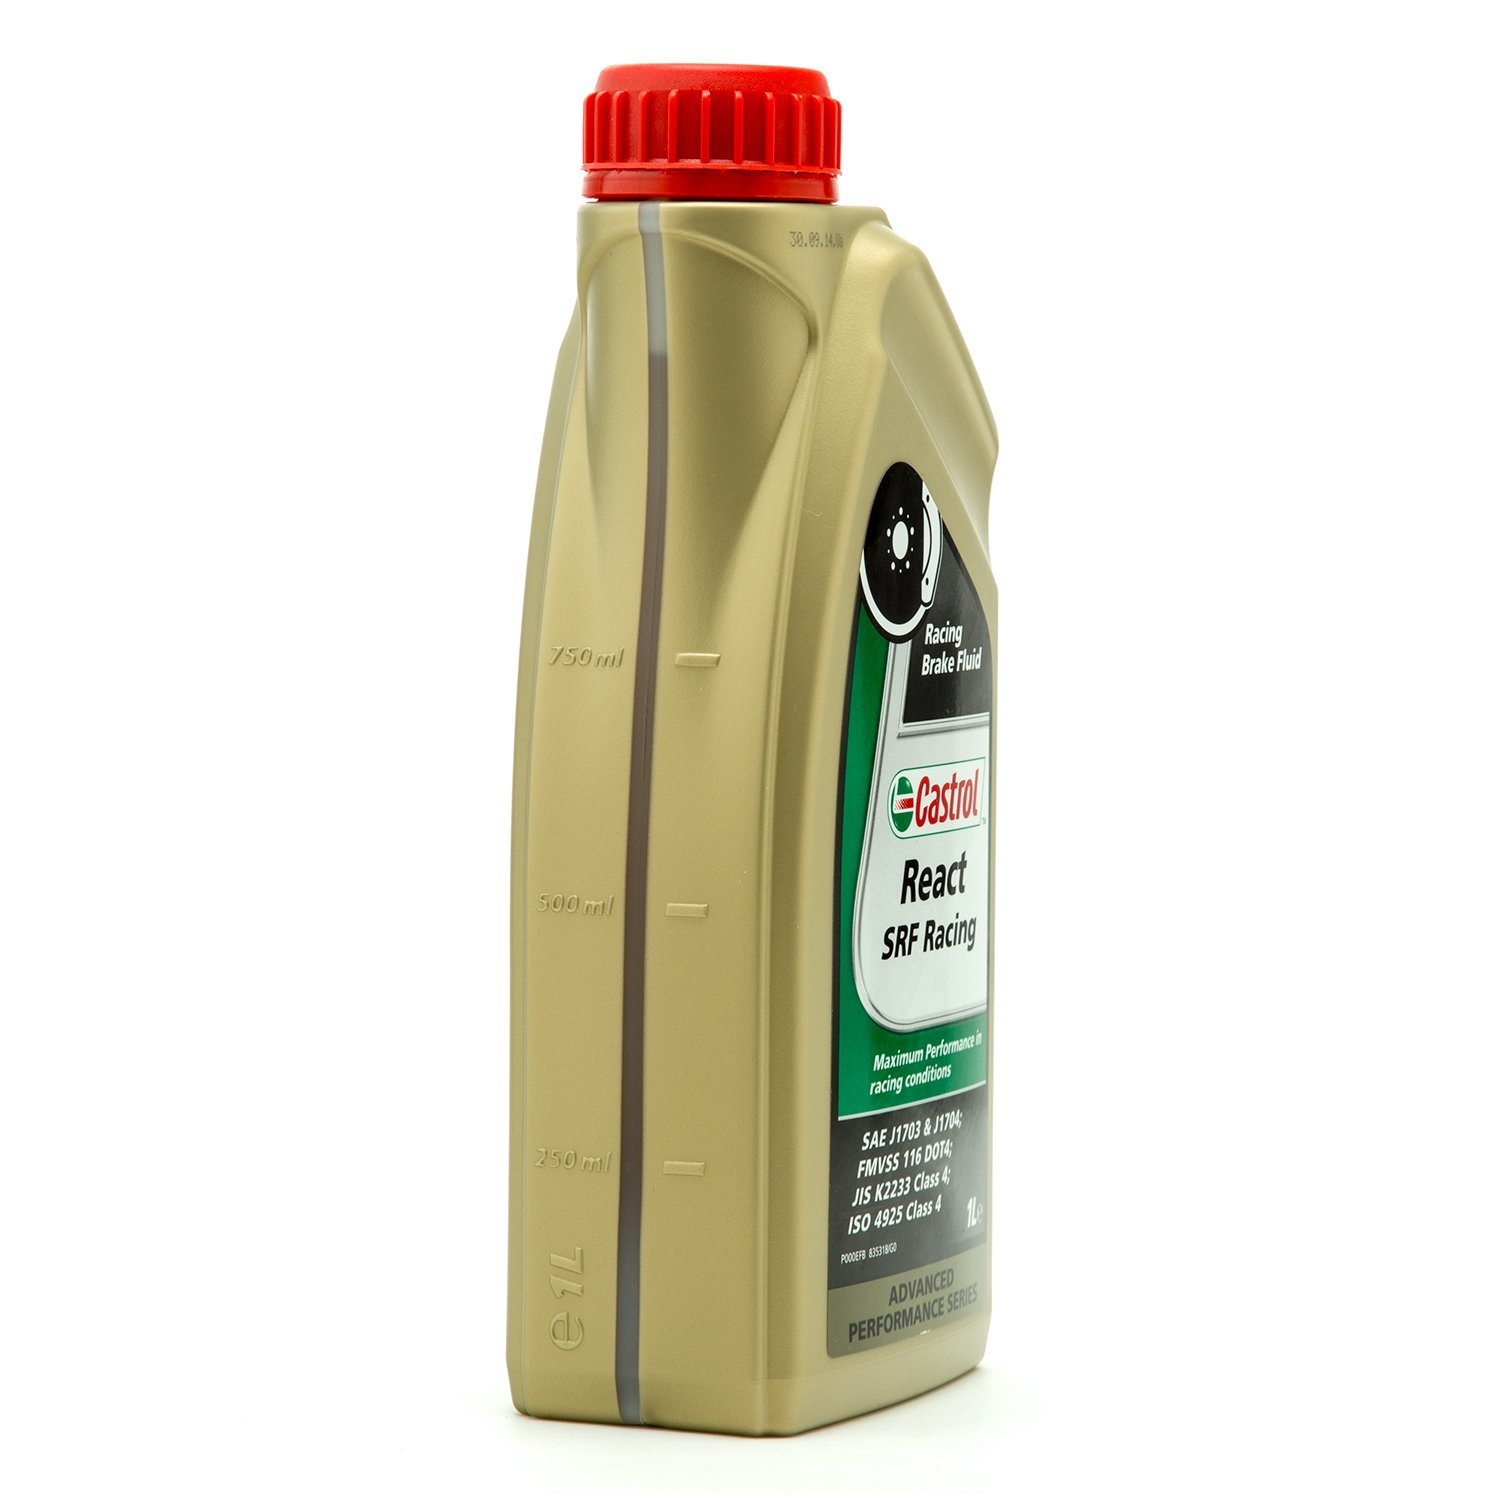 Castrol SRF Racing Brake Fluid - 1 Liter 12512 by Castrol (Image #1)